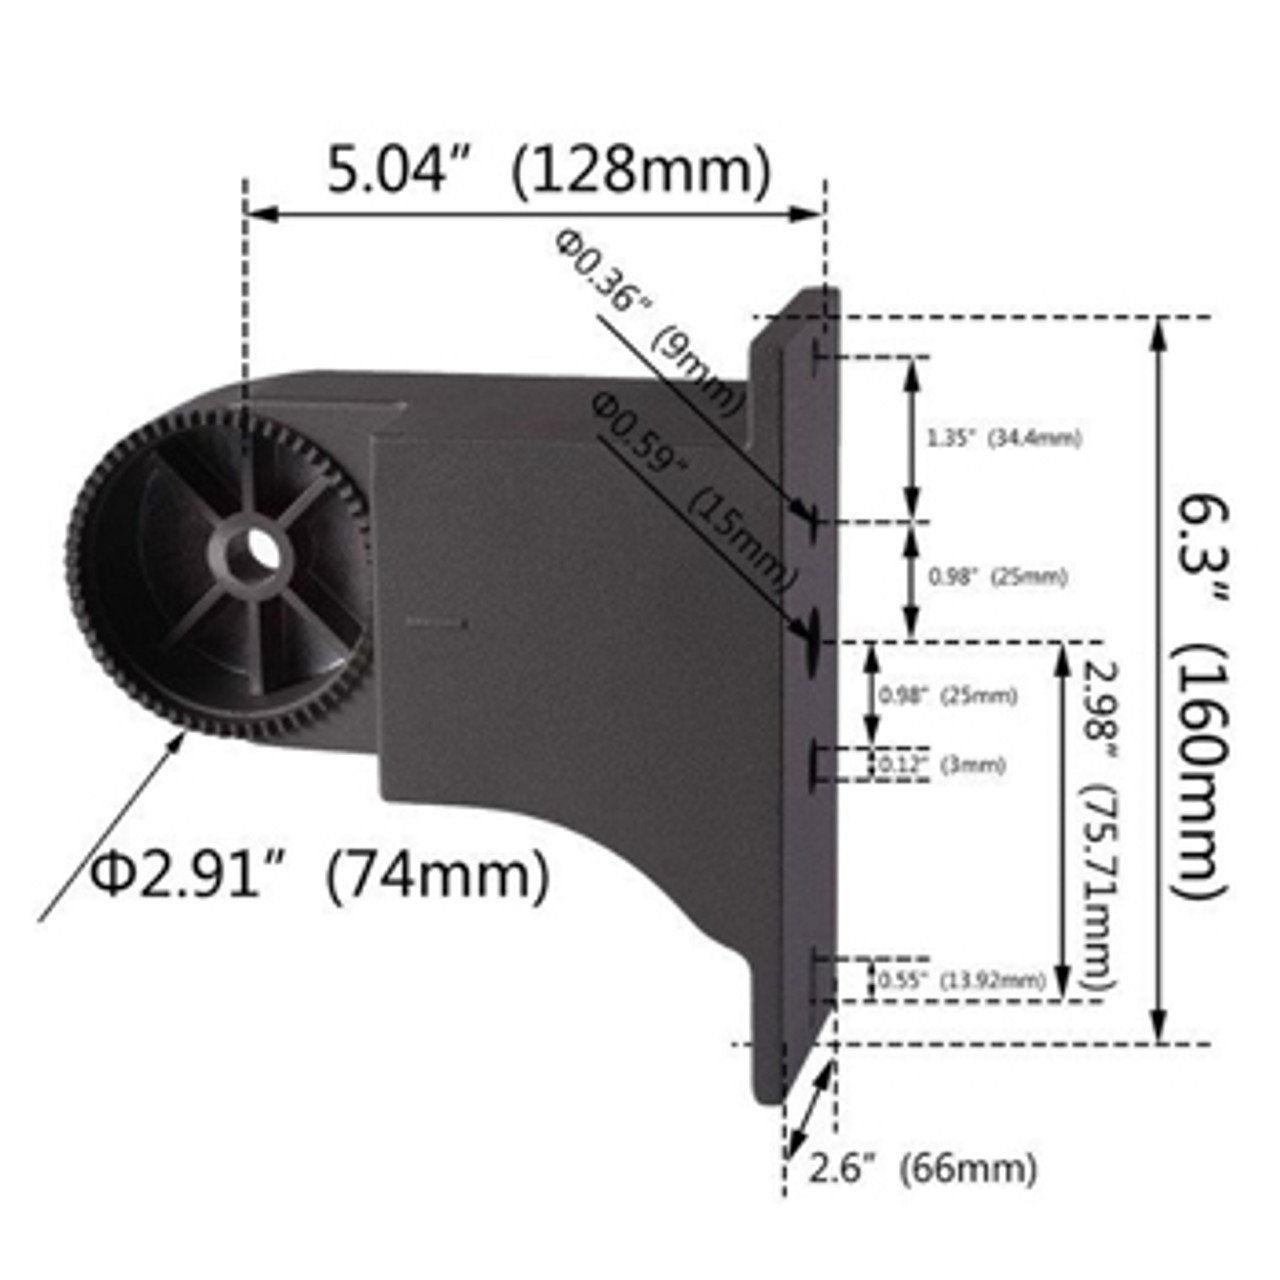 Adjustable Arm Mount- round or square dimensions